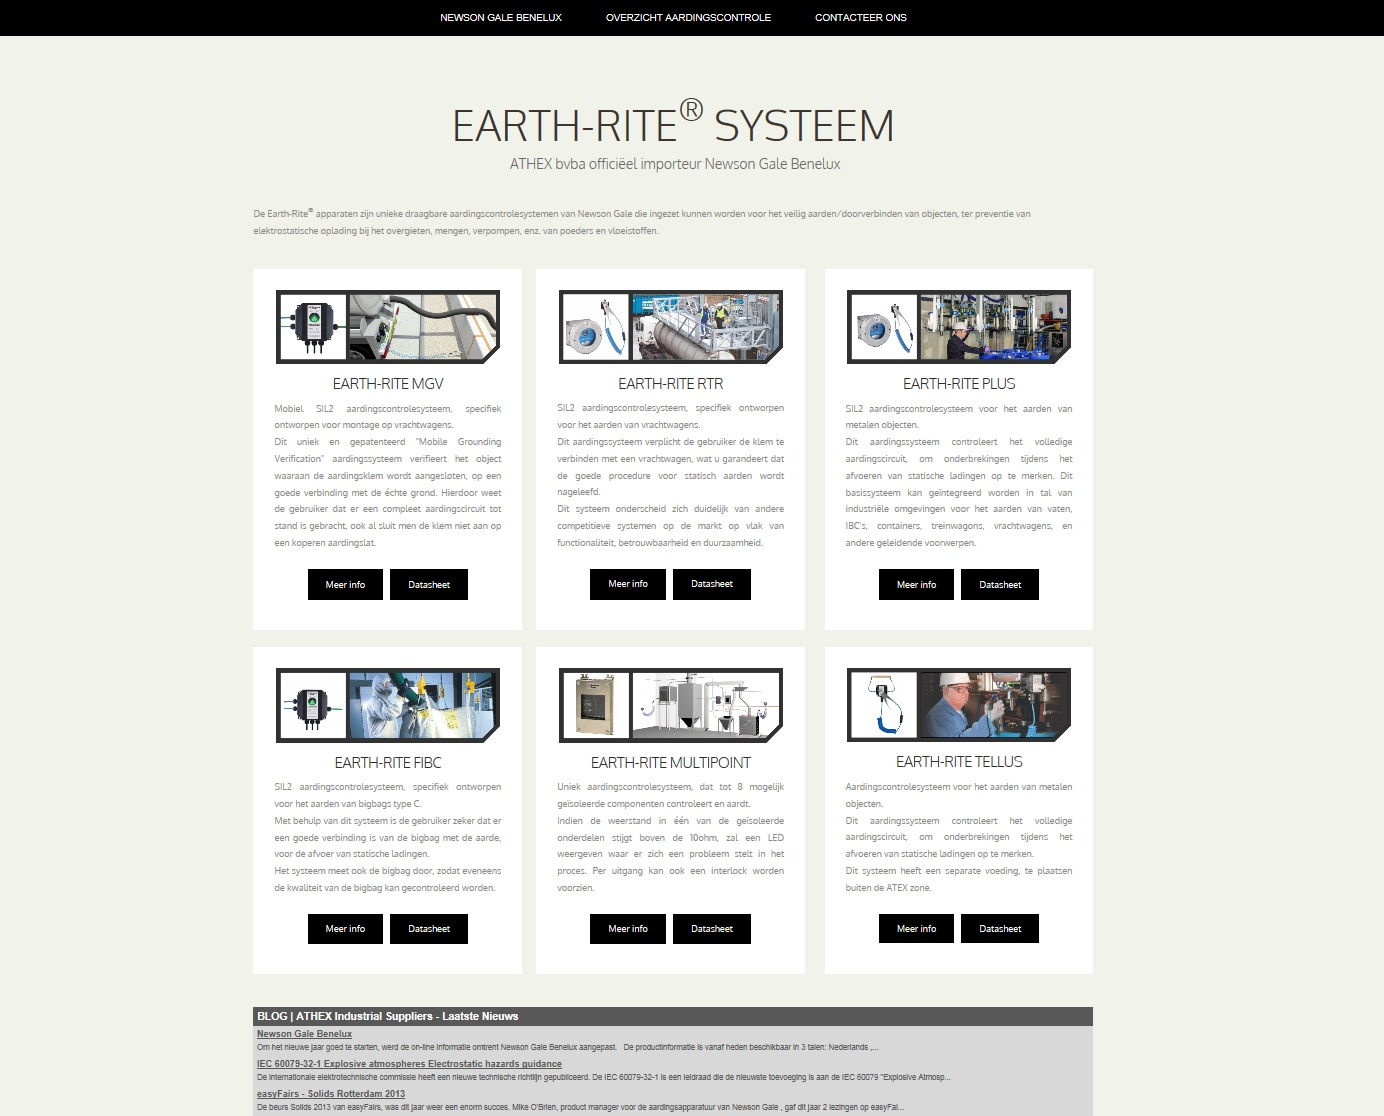 http://www.newsongale.be/nl/earth-rite/index.html